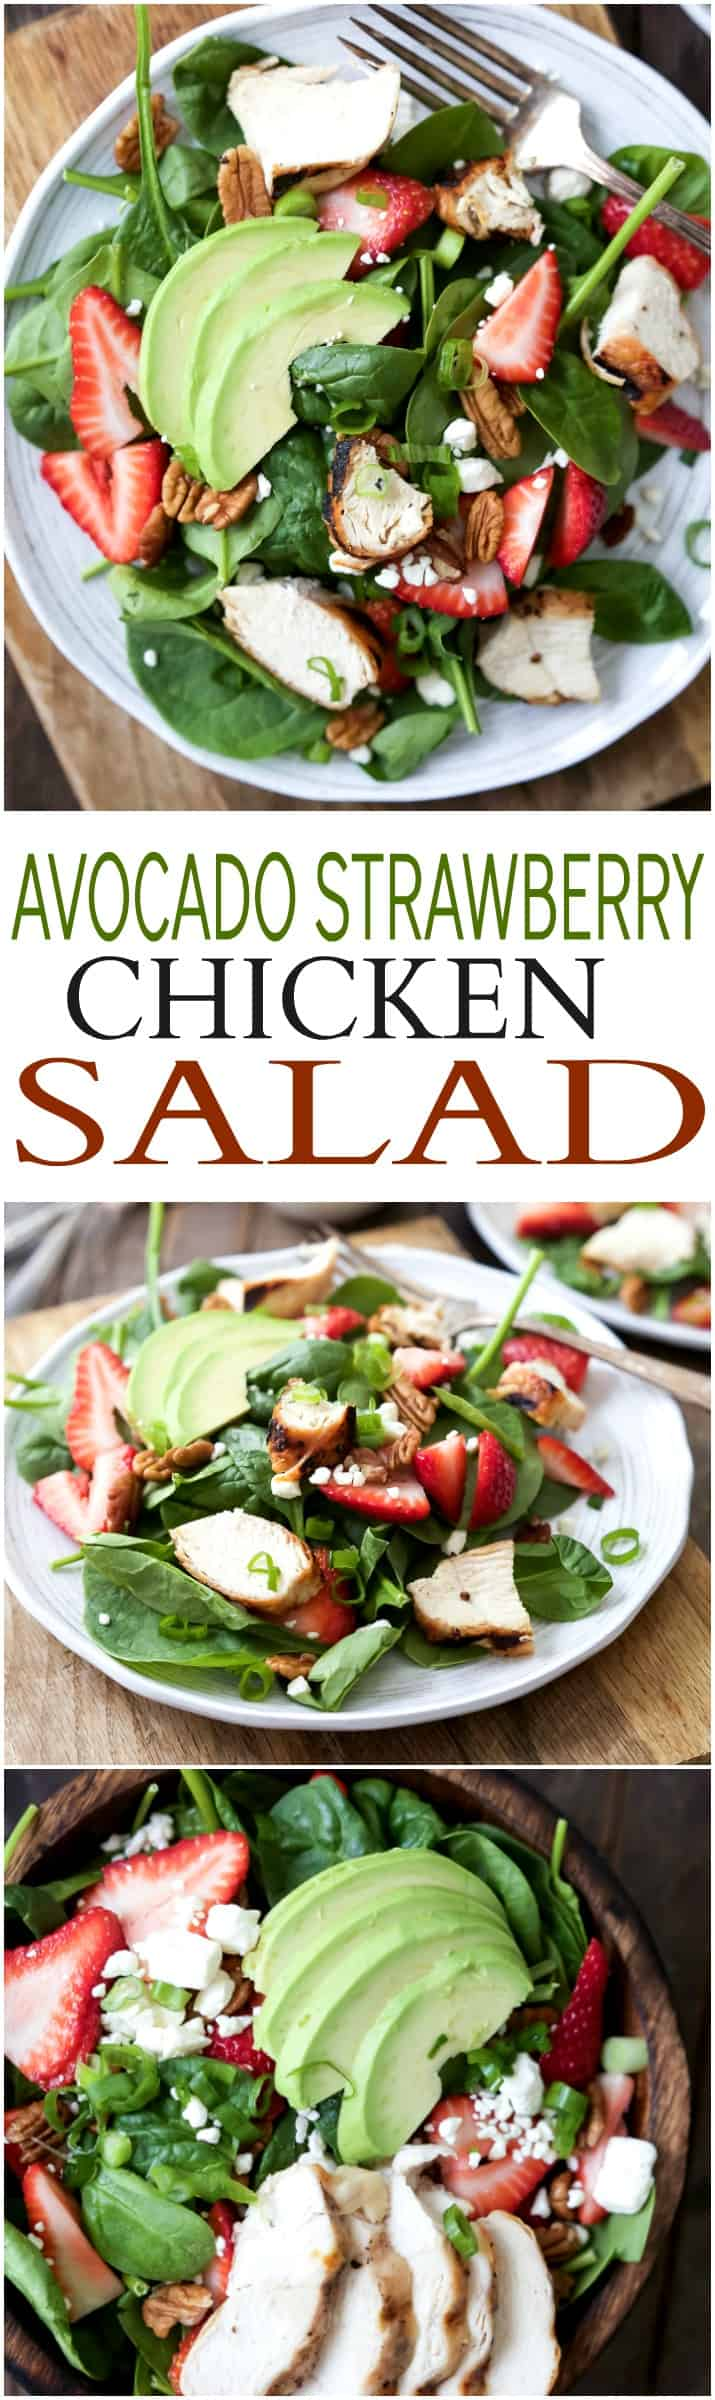 Berries, Feta, creamy Avocado, and Grilled Chicken. This light salad ...